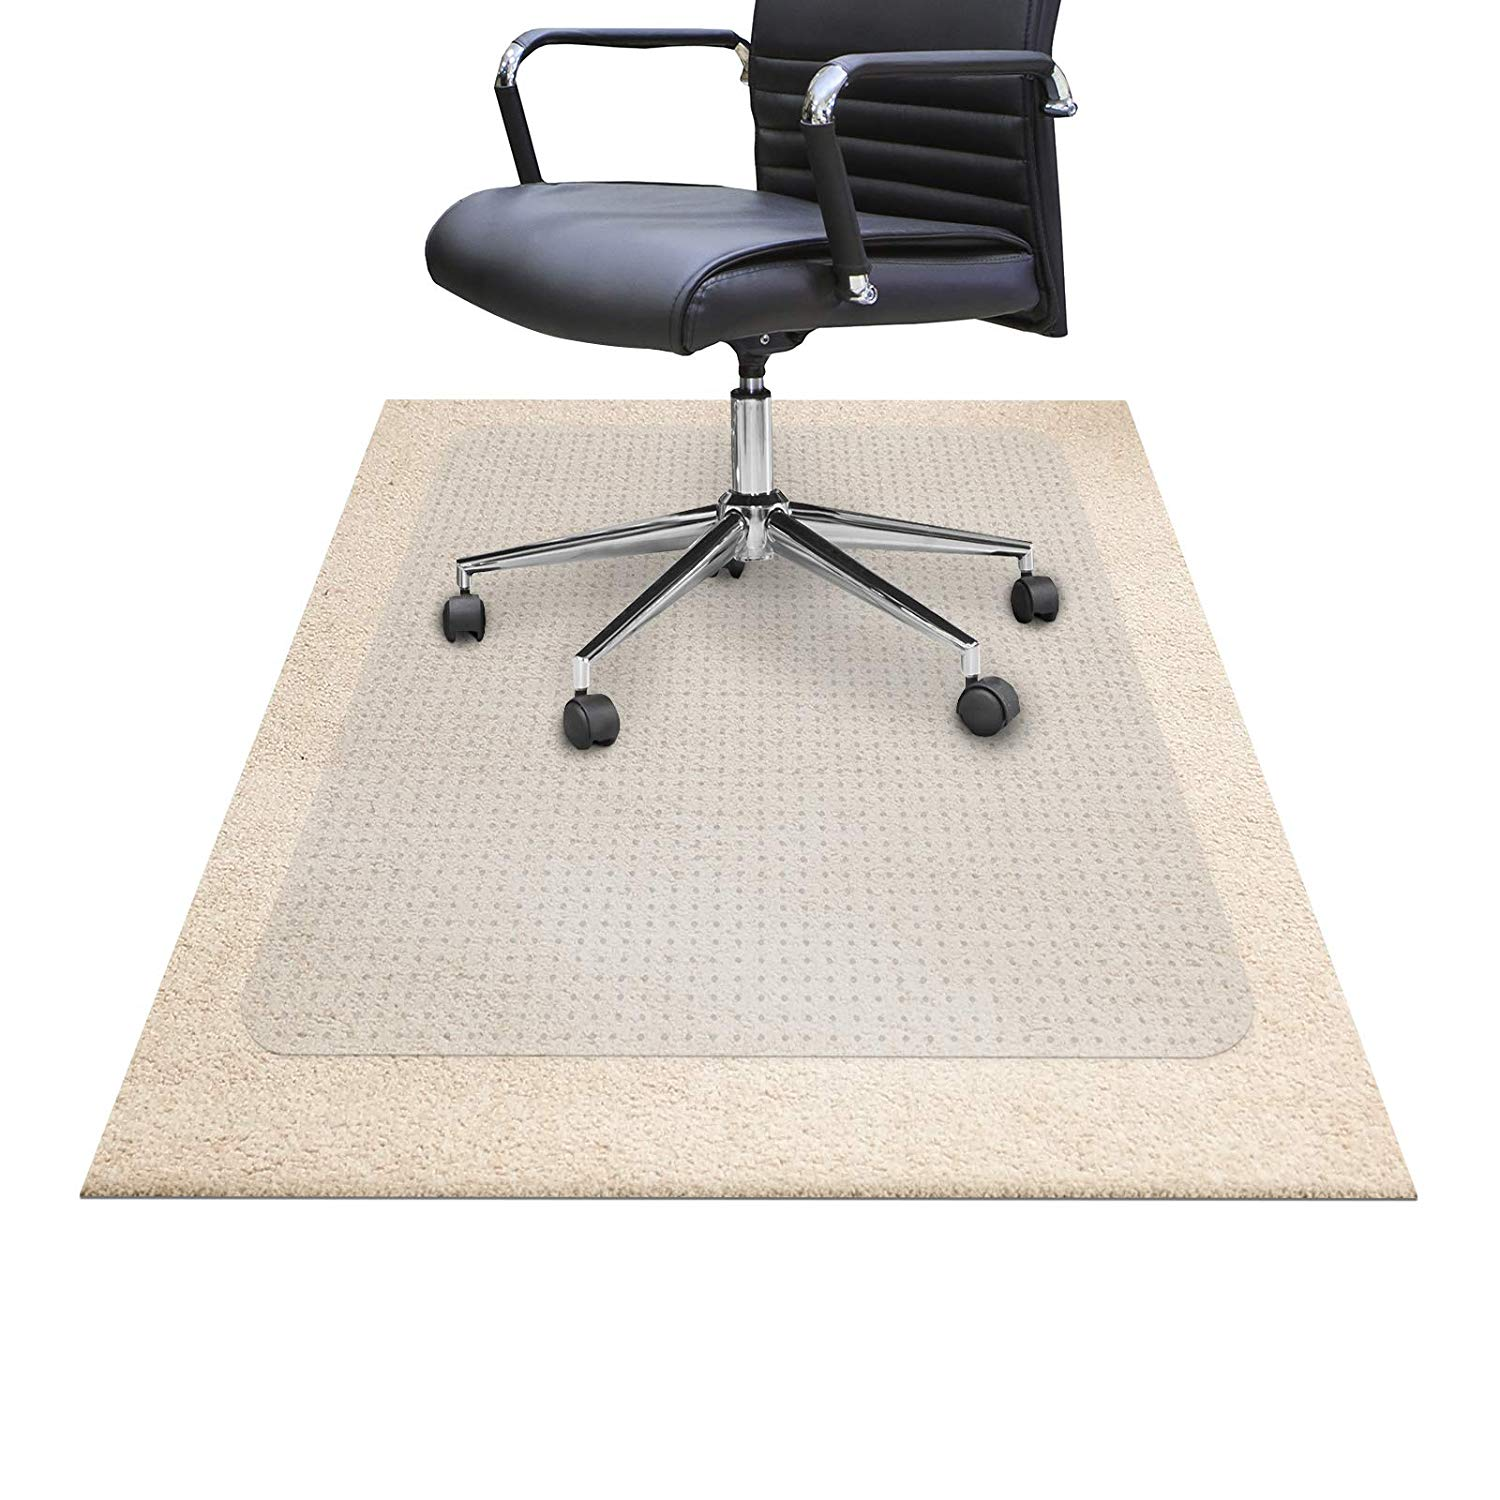 Picture of: Office Chair Mat With Nail For Hardwood Floor Mats For Floor Office Desk Chair Floor Mats For Office Rectangle Durable Pvc Floor Protection Mat Avoid Slipping 35 X 47 X 0 08 S10362